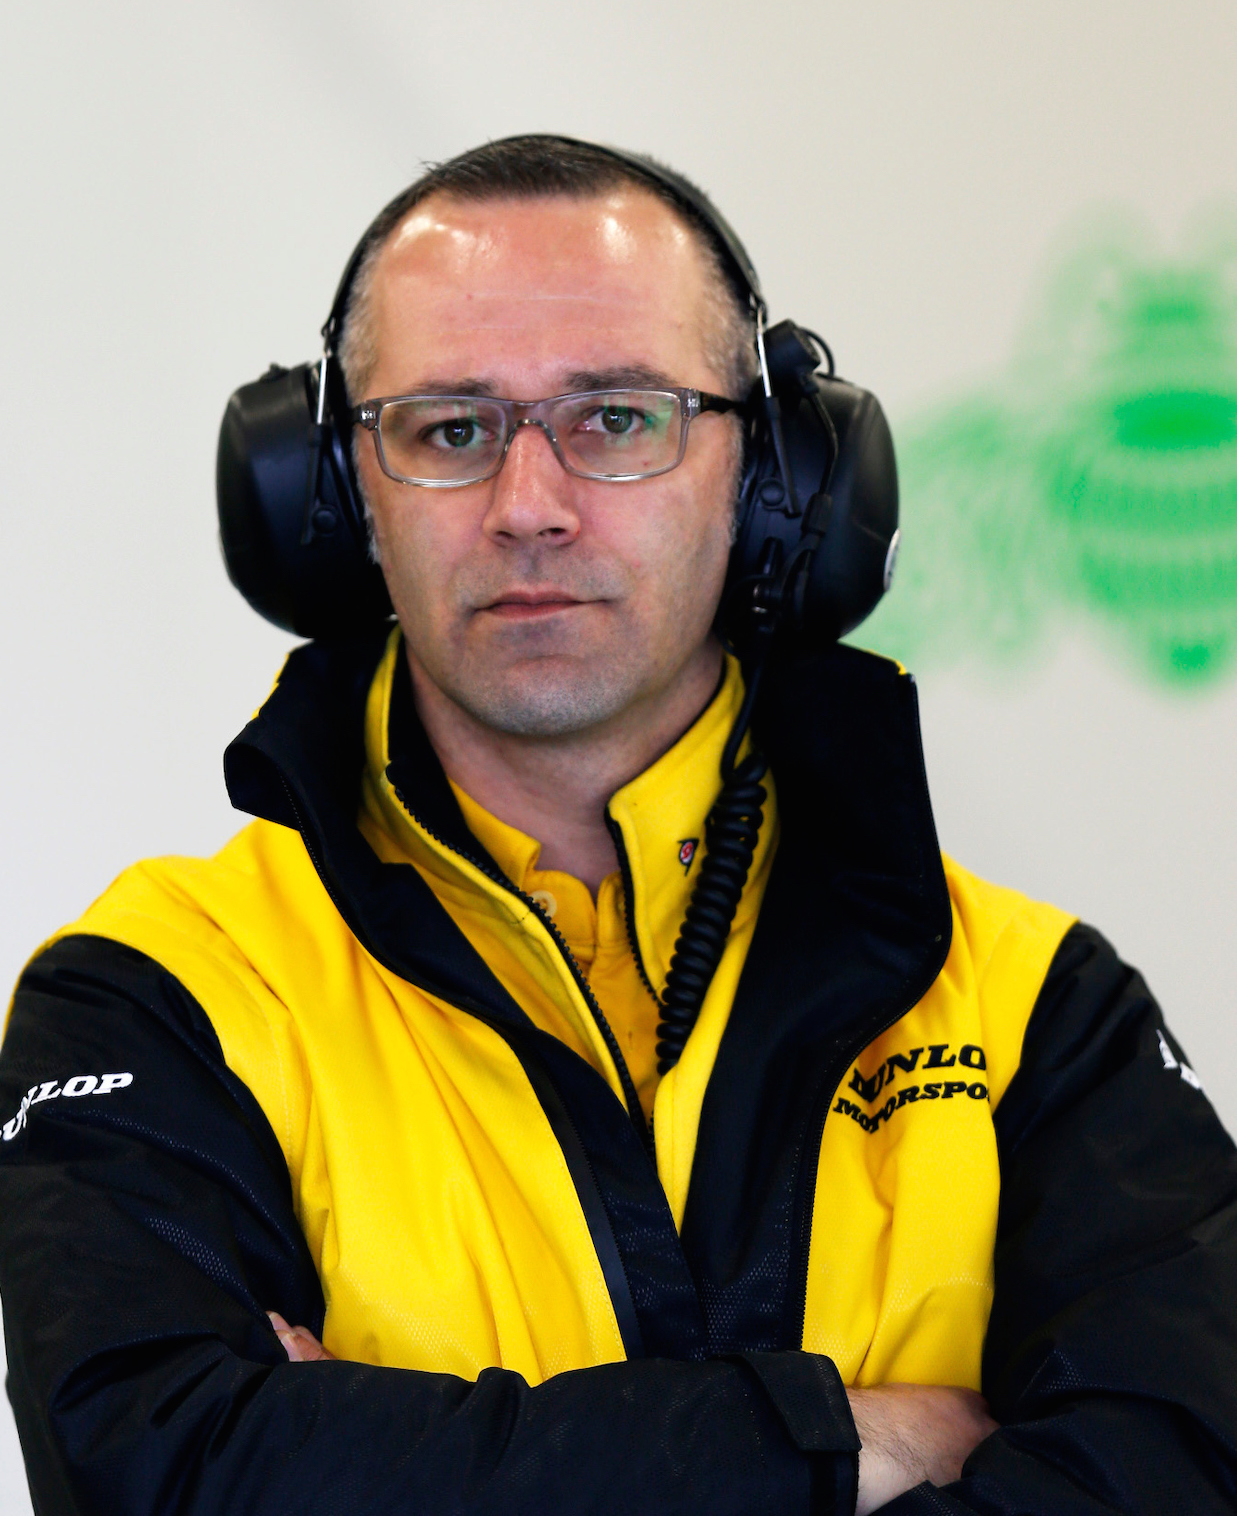 Dunlop, which is now in its second year of competition with Aston Martin in WEC, says a new regulation will enable greater transfer from track to road